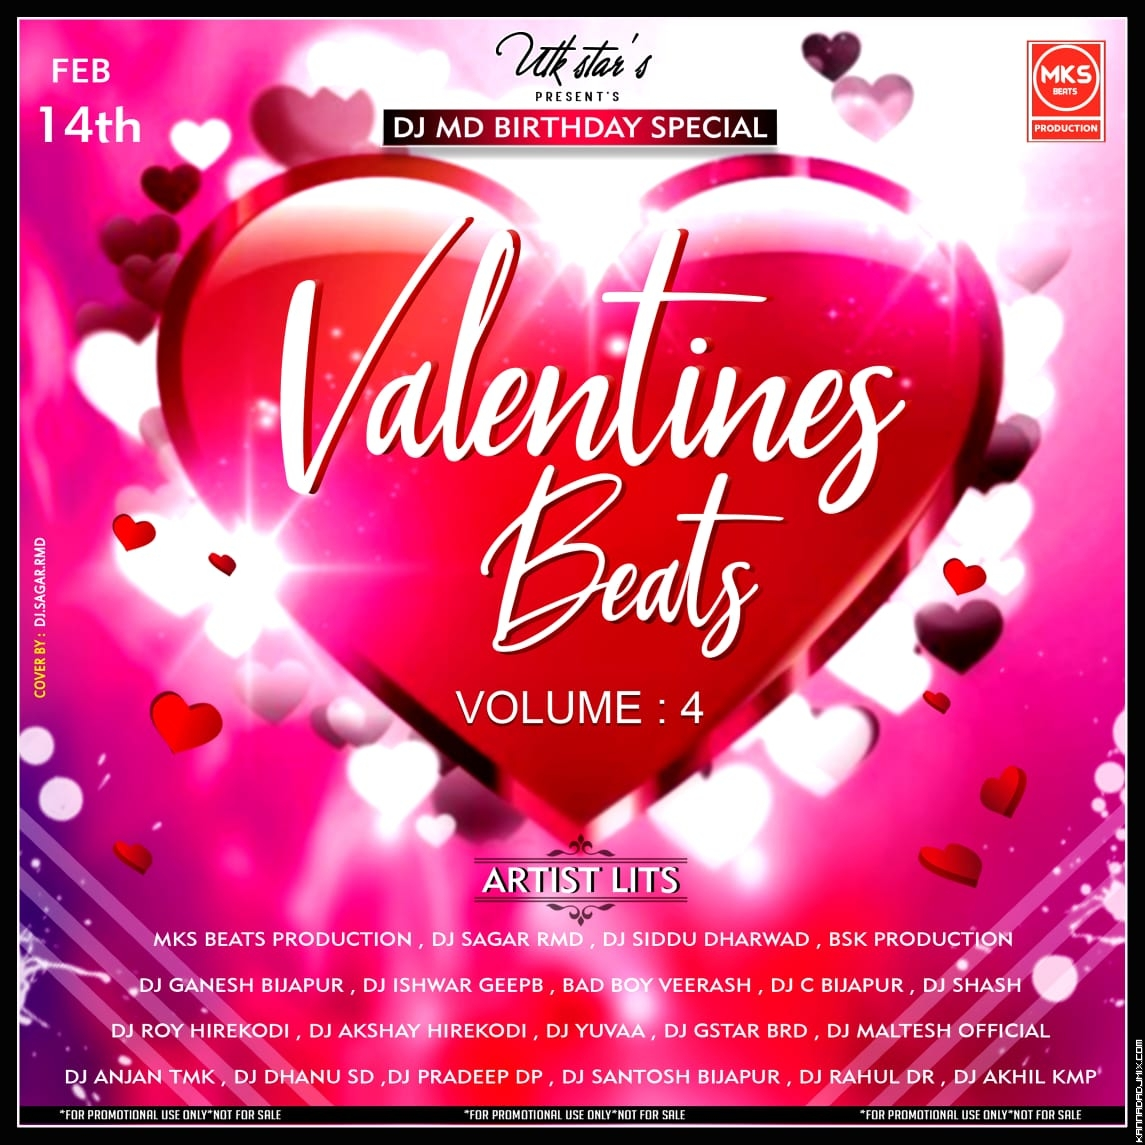 18-KANNADA_LOVE_MASHUP-BSK-PRODUCTION-2.mp3